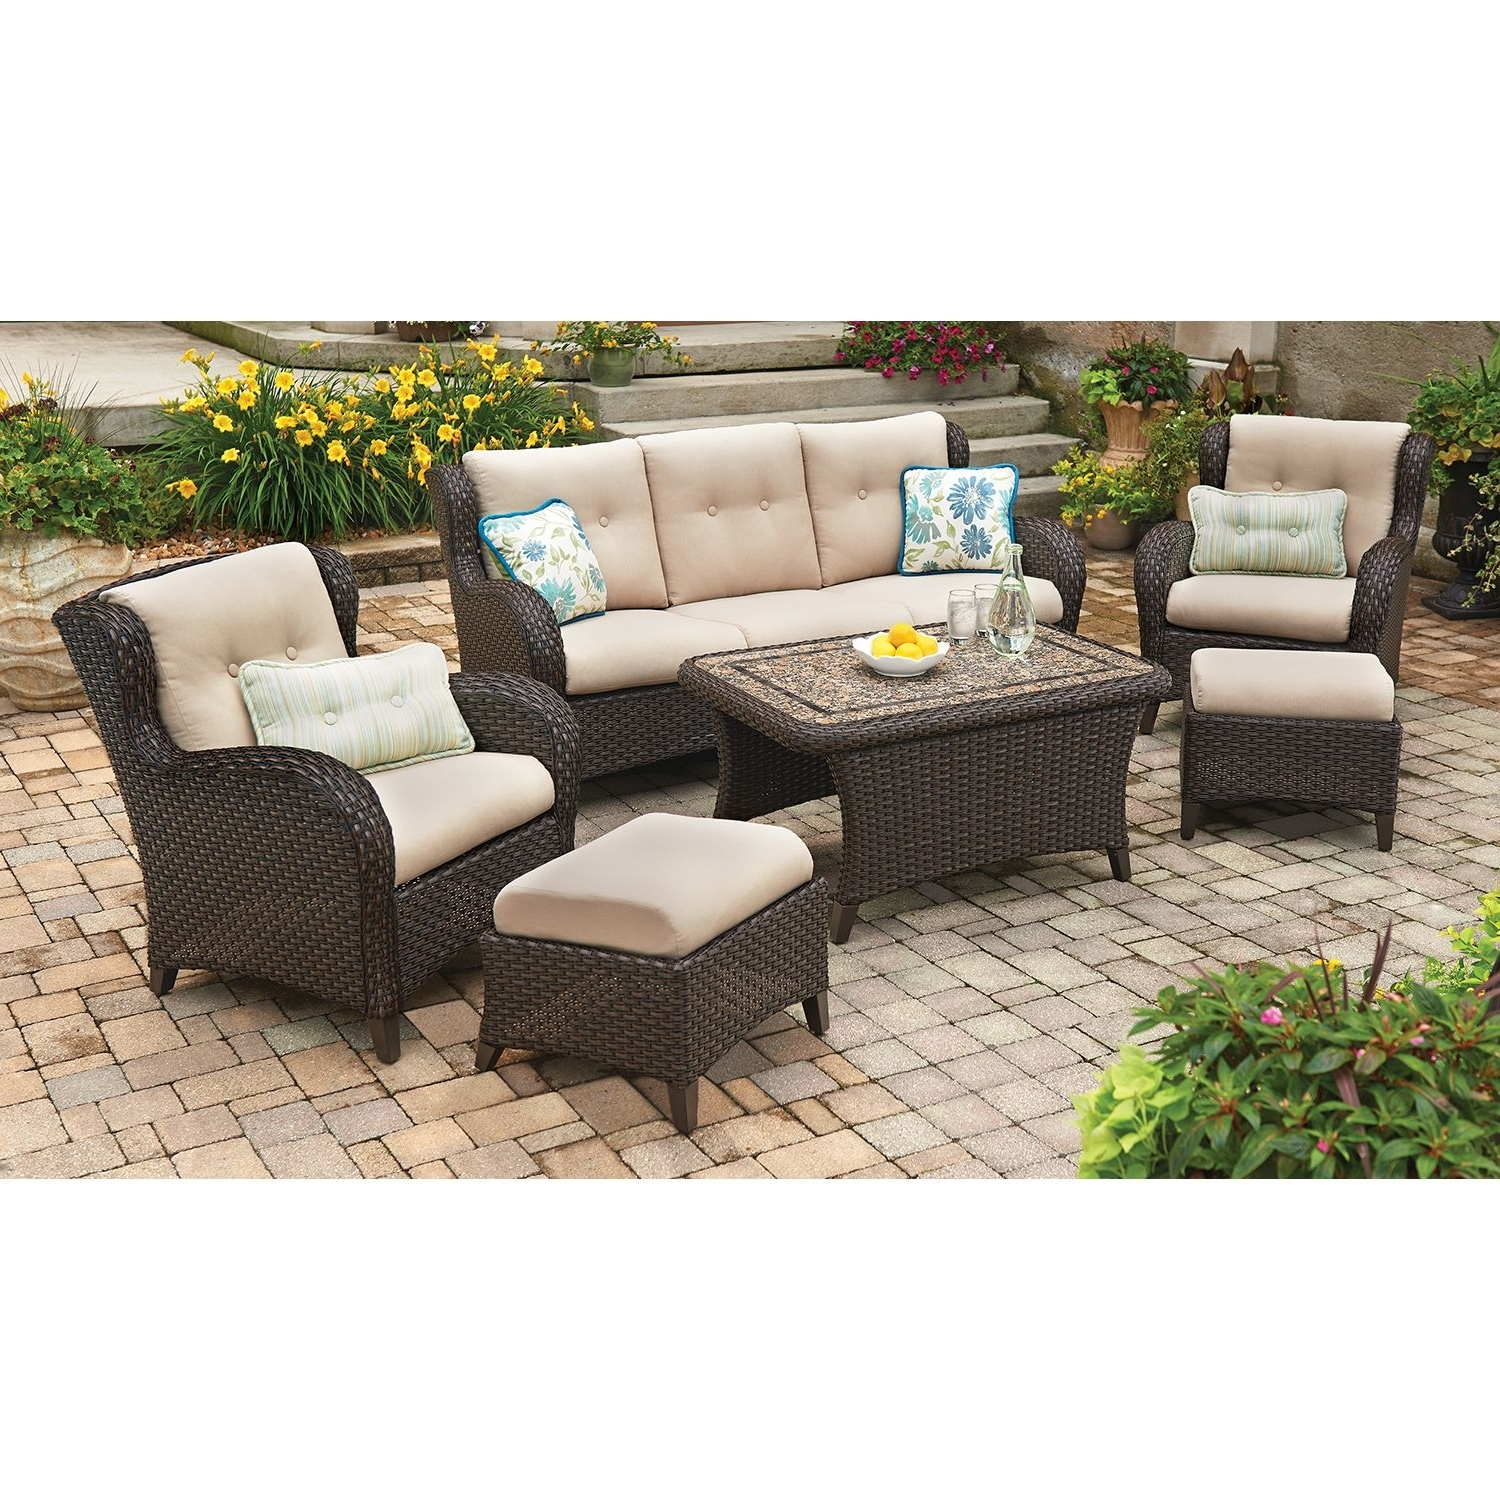 Most Recently Released Member's Mark Heritage 6 Piece Deep Seating Set With Premium Within Sam's Club Chaise Lounge Chairs (View 10 of 15)